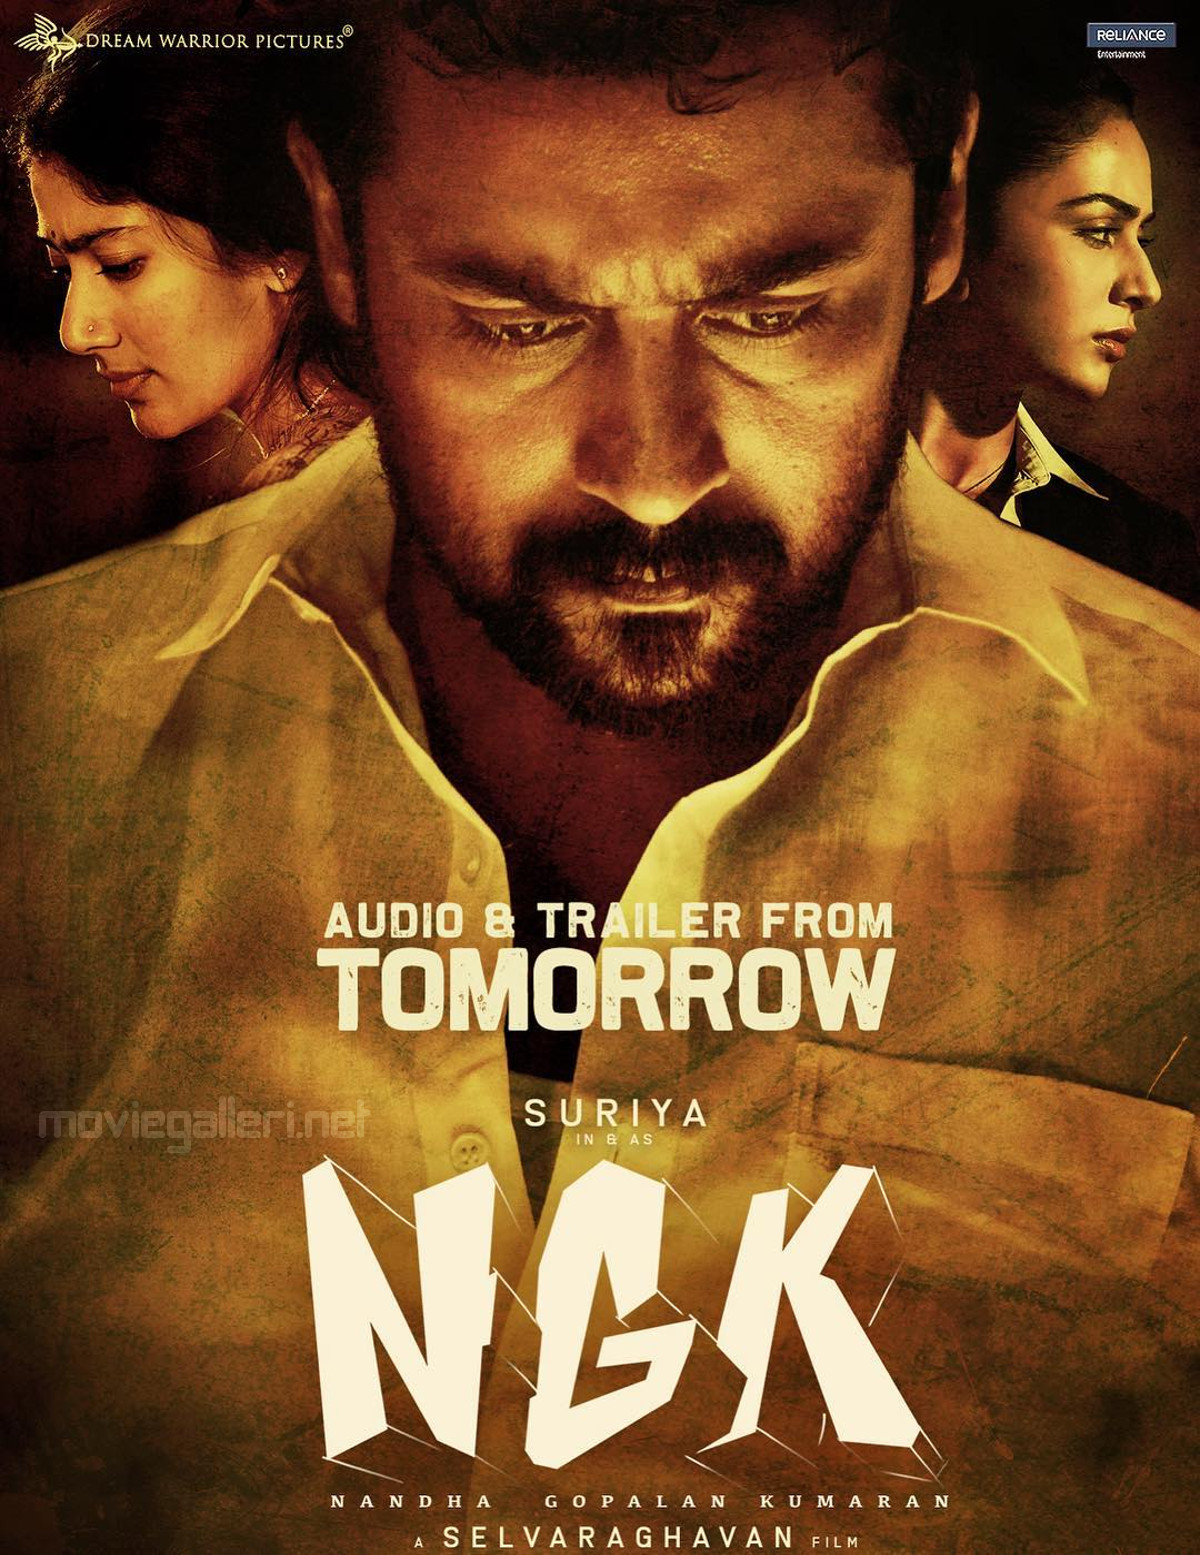 Suriya NGK Movie Audio Trailer Tomorrow Poster HD